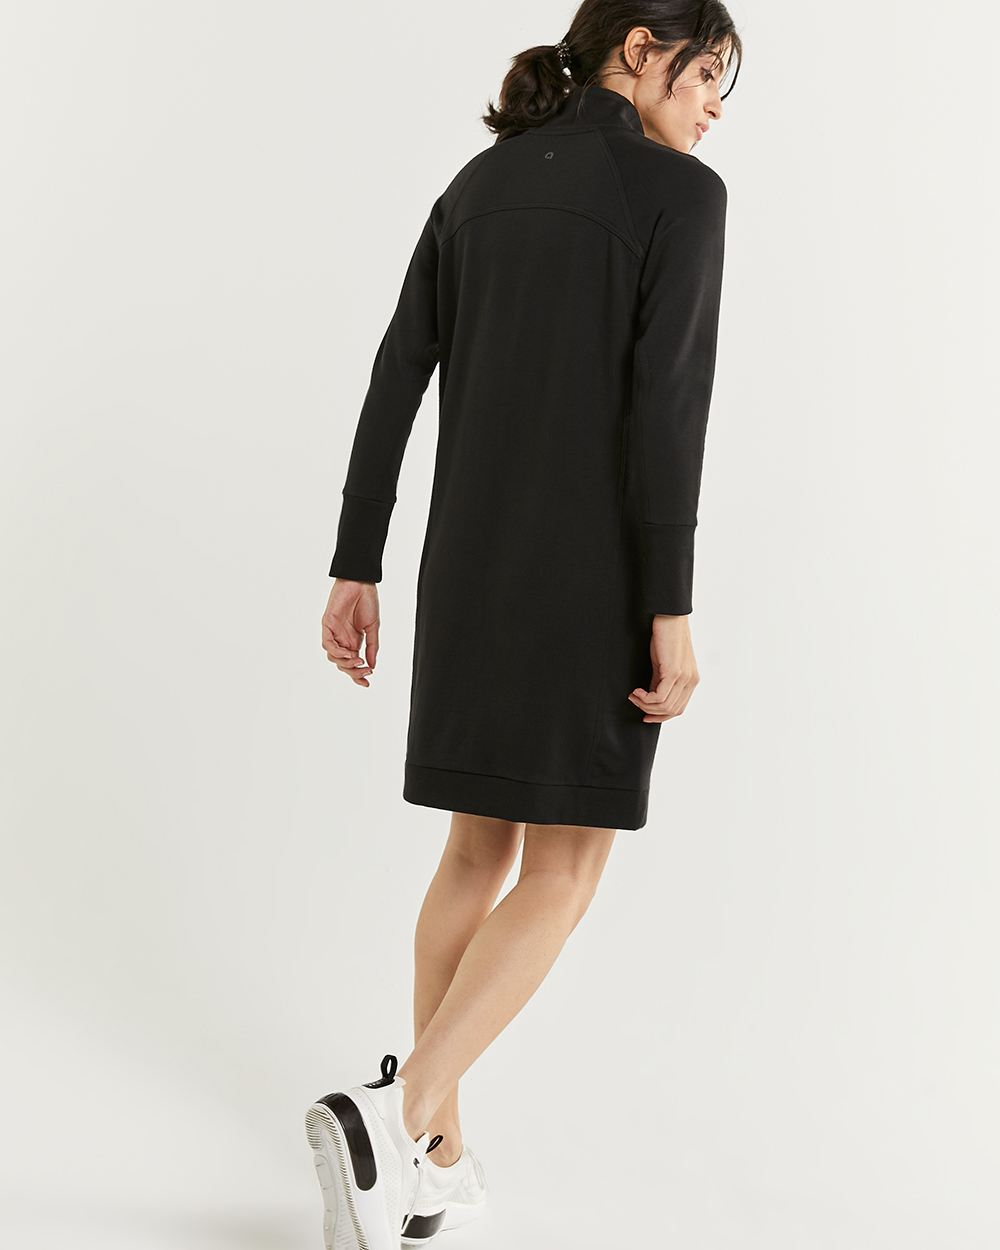 Long Sleeve Mock Neck Dress Hyba